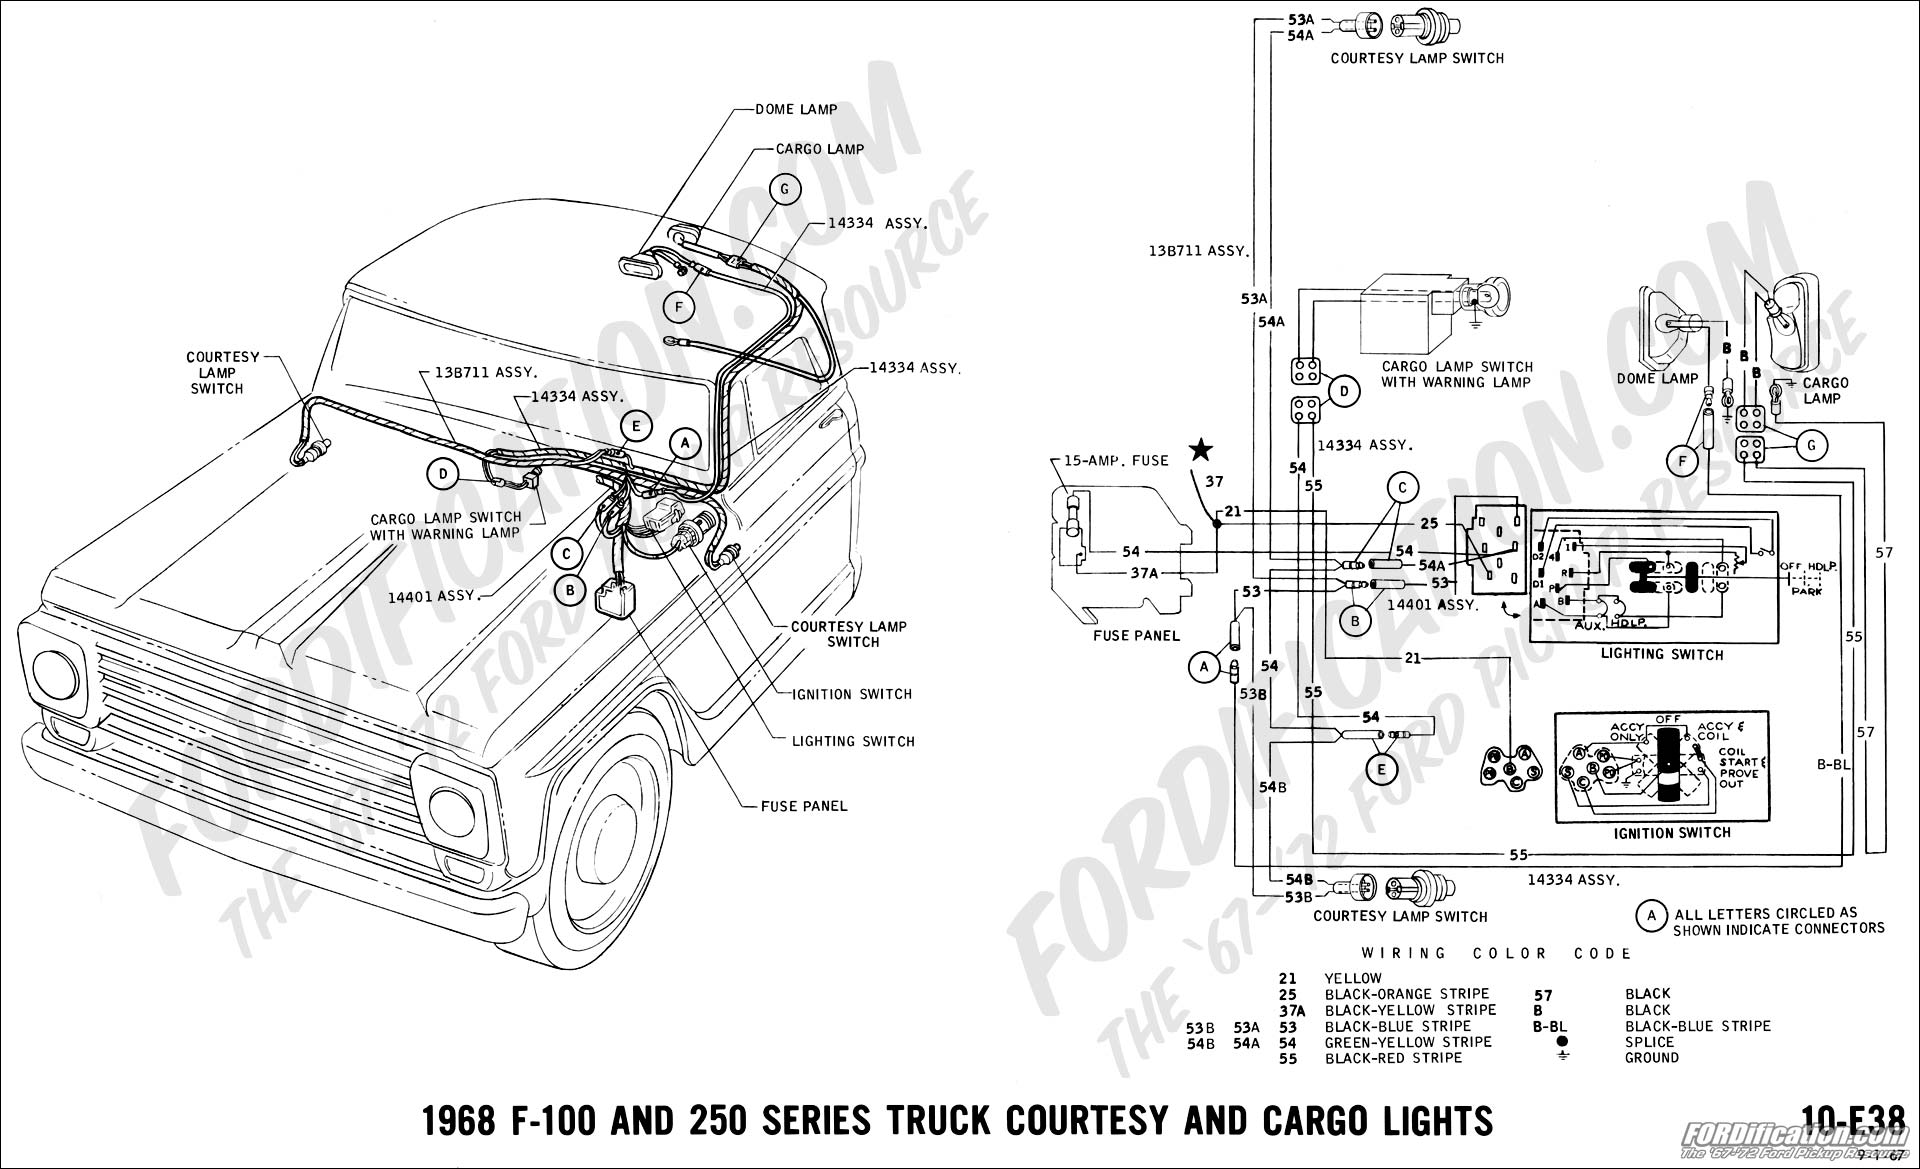 68 40 ford truck technical drawings and schematics section h wiring lance truck camper wiring harness at soozxer.org